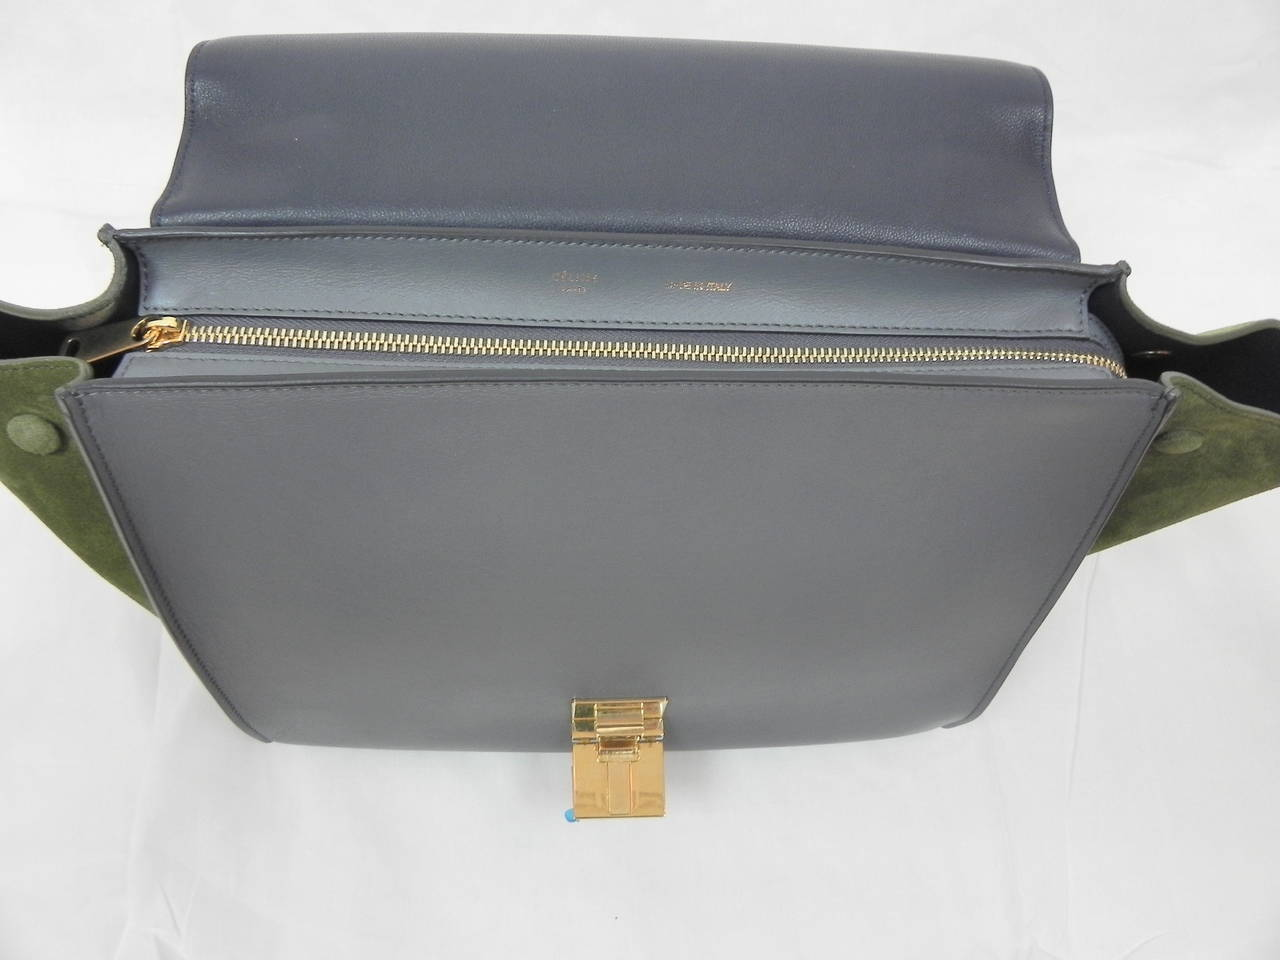 celine shoulder luggage tote price